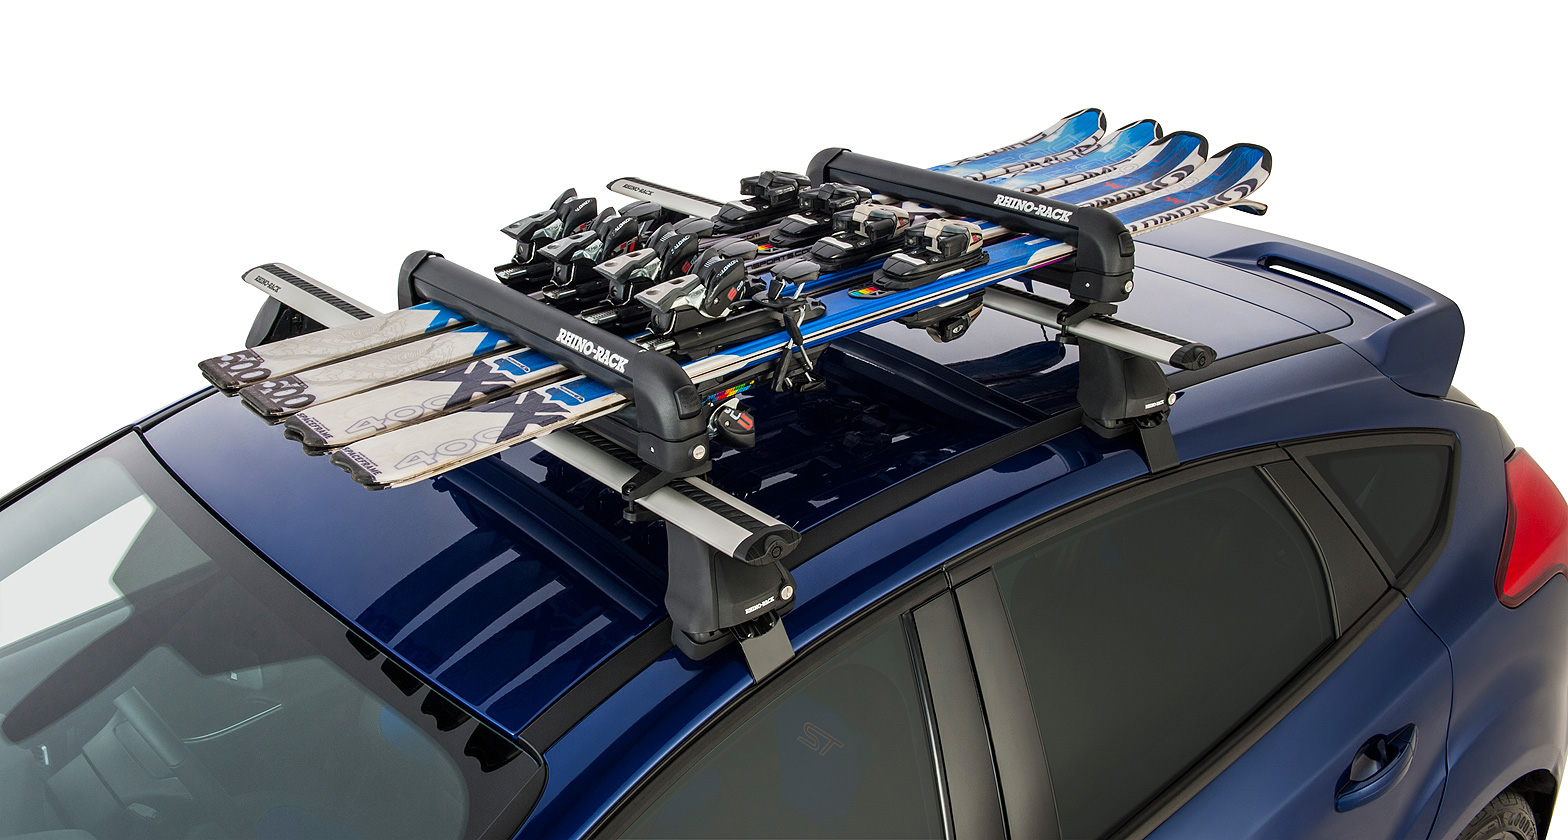 574 - Ski and Snowboard Carrier - 4 Skis or 2 Snowboards  2f404122e640